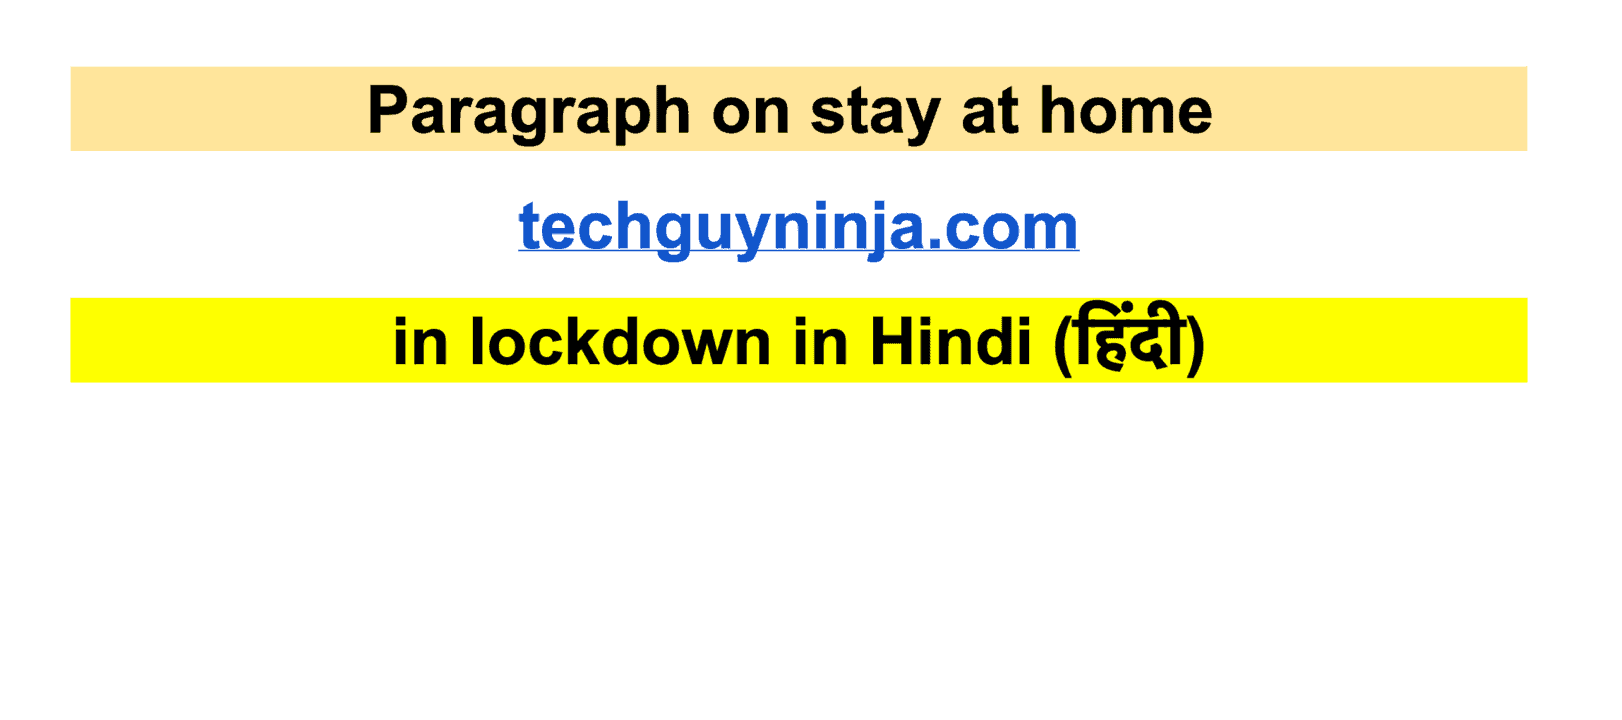 Paragraph on stay at home in lockdown in Hindi